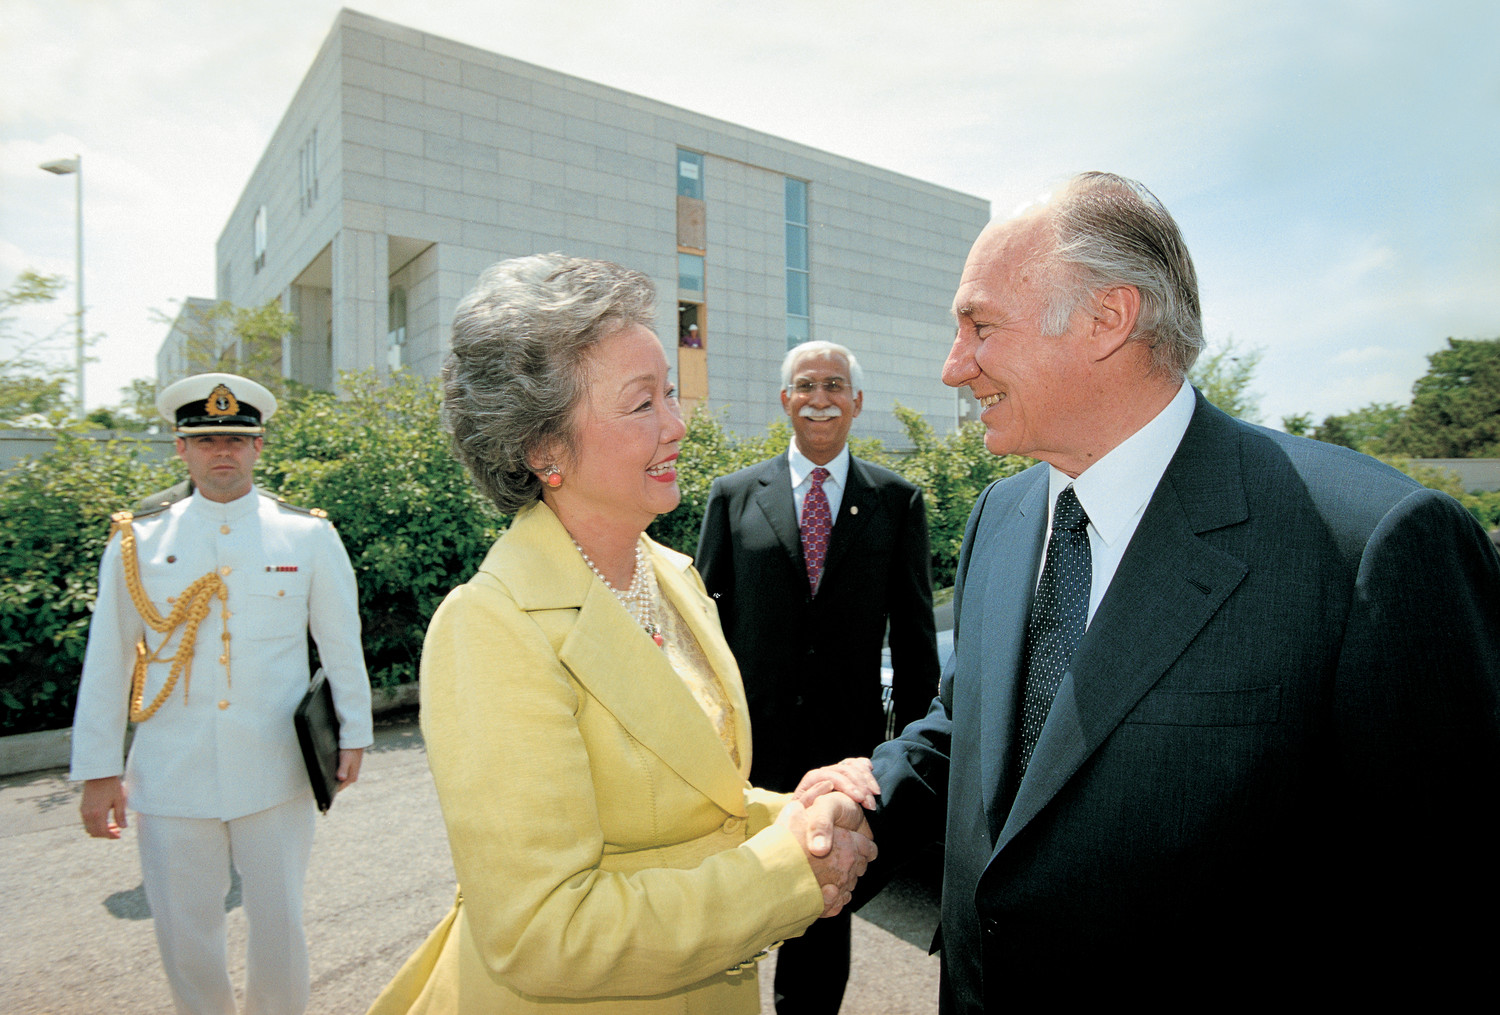 Aga Khan And Governor General Of Canada Initiate Delegation Of The